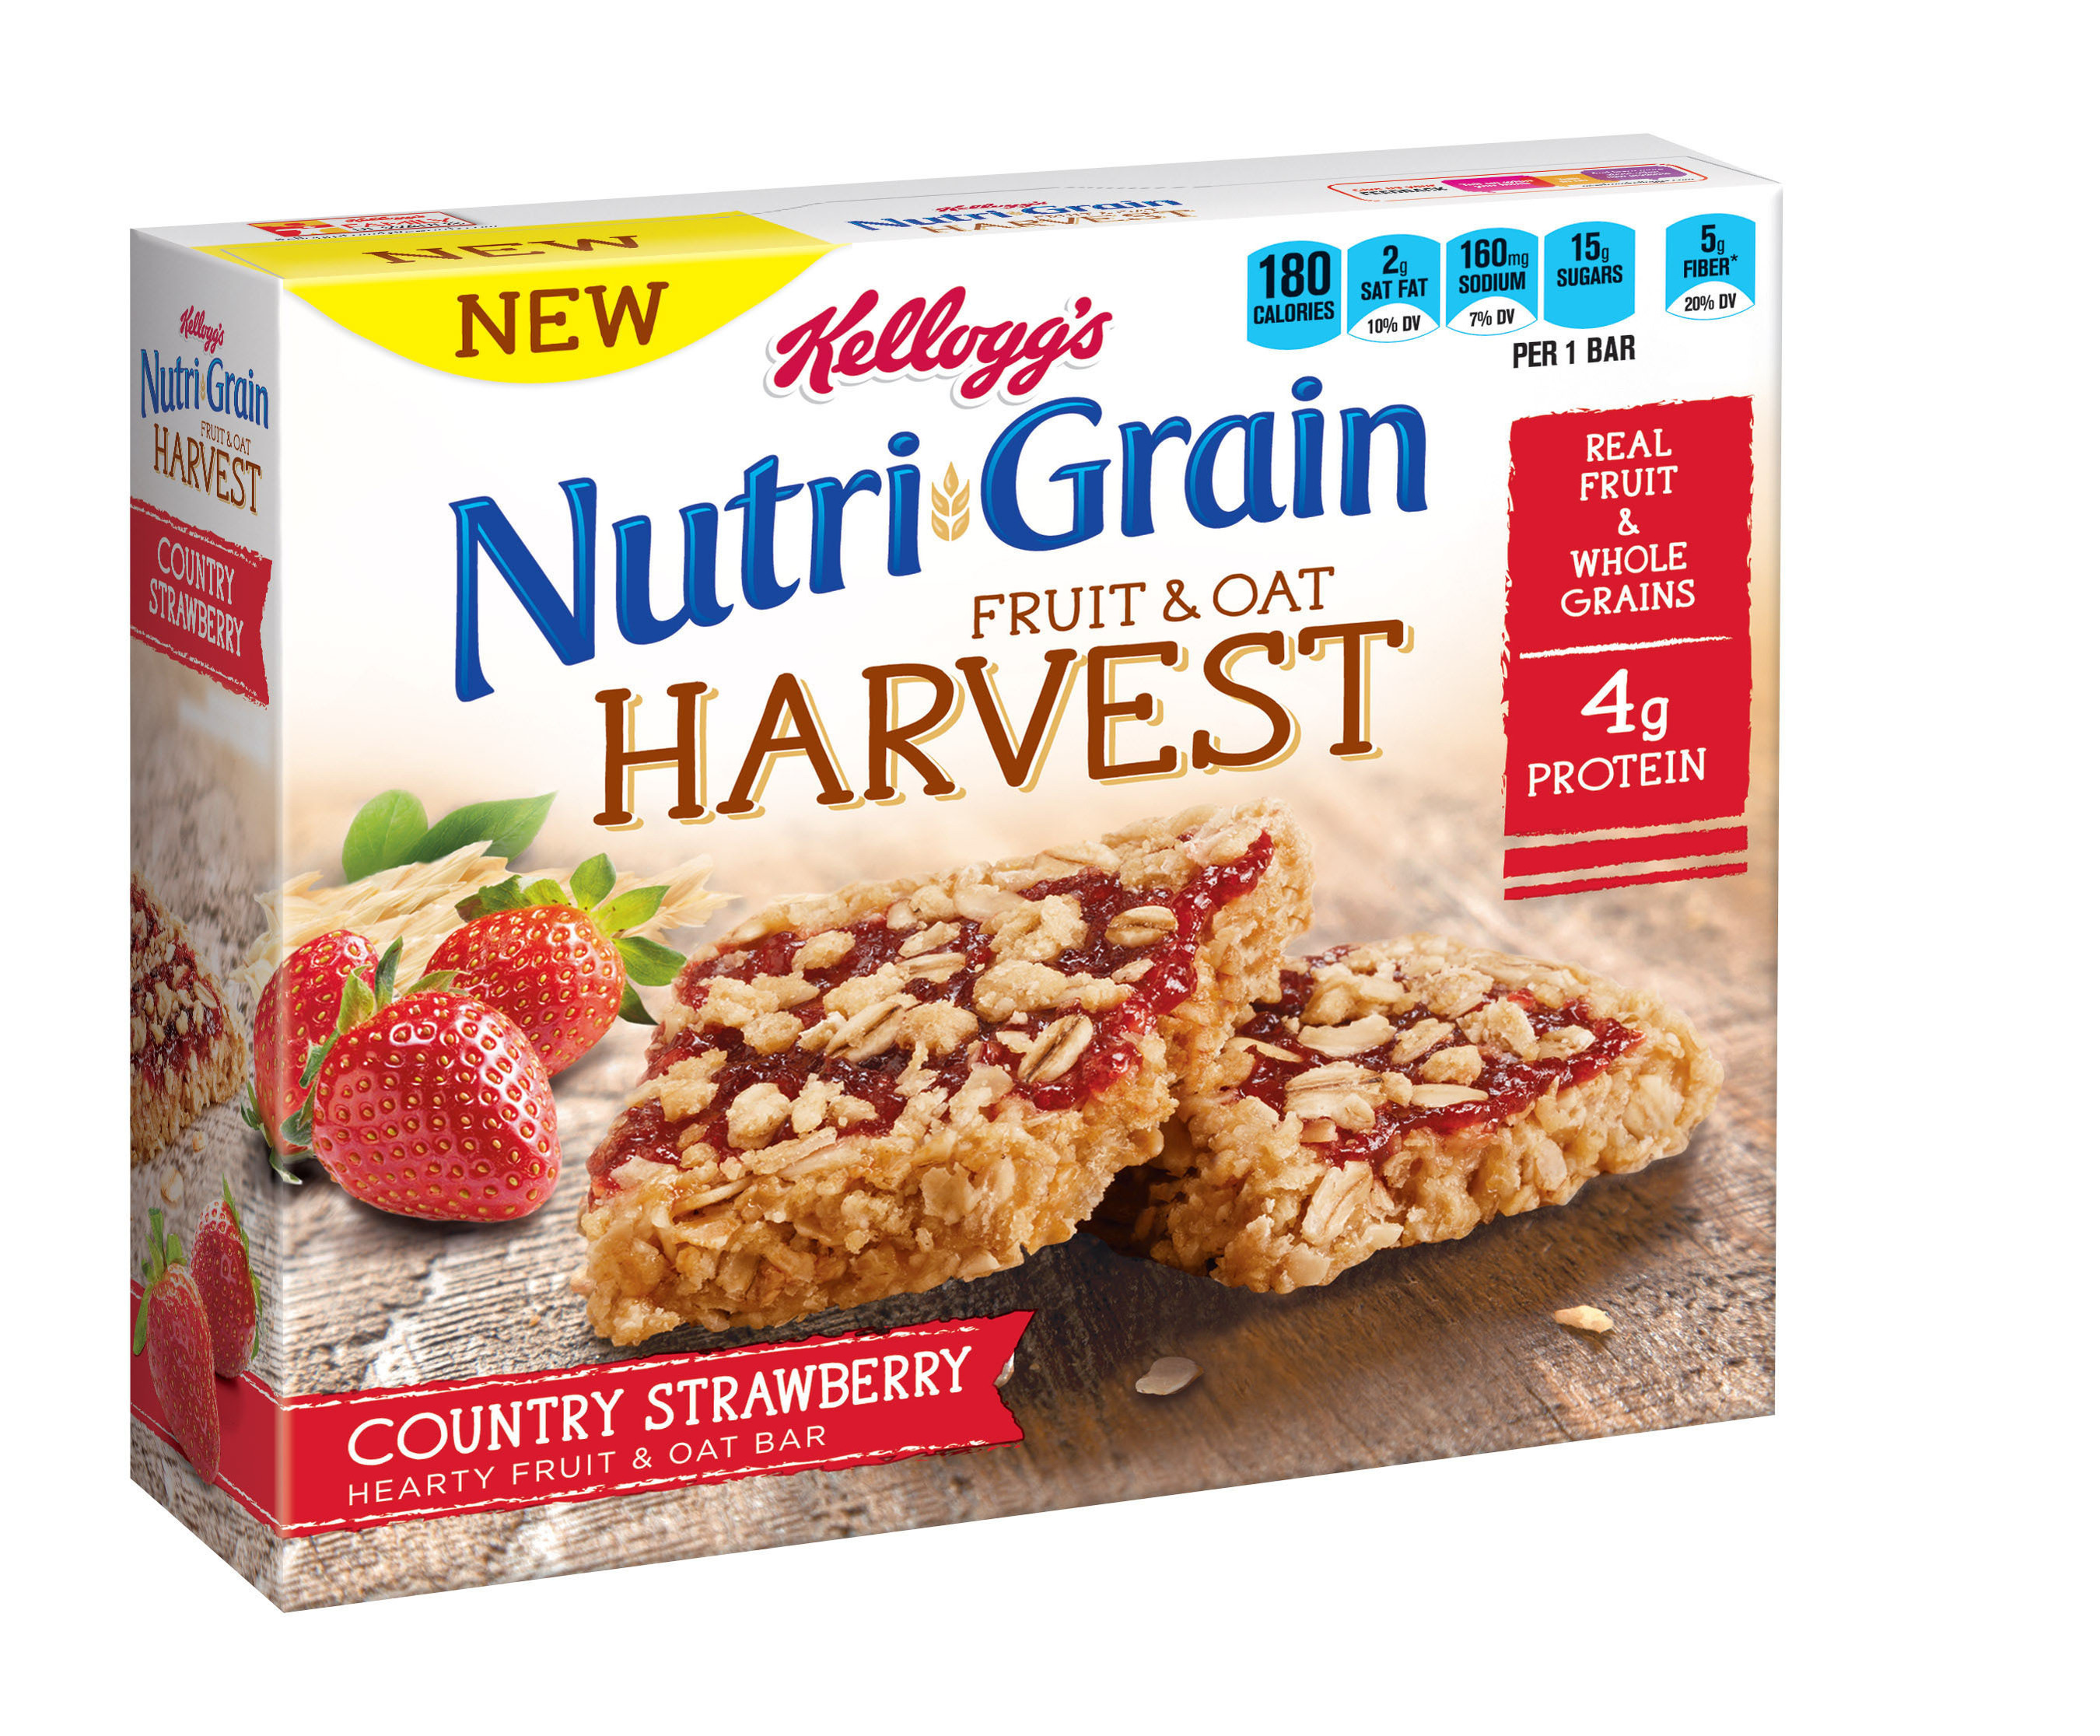 Kellogg's Nutri-Grain Fruit & Oat Harvest Country Strawberry cereal bar.  (PRNewsFoto/Kellogg Company)